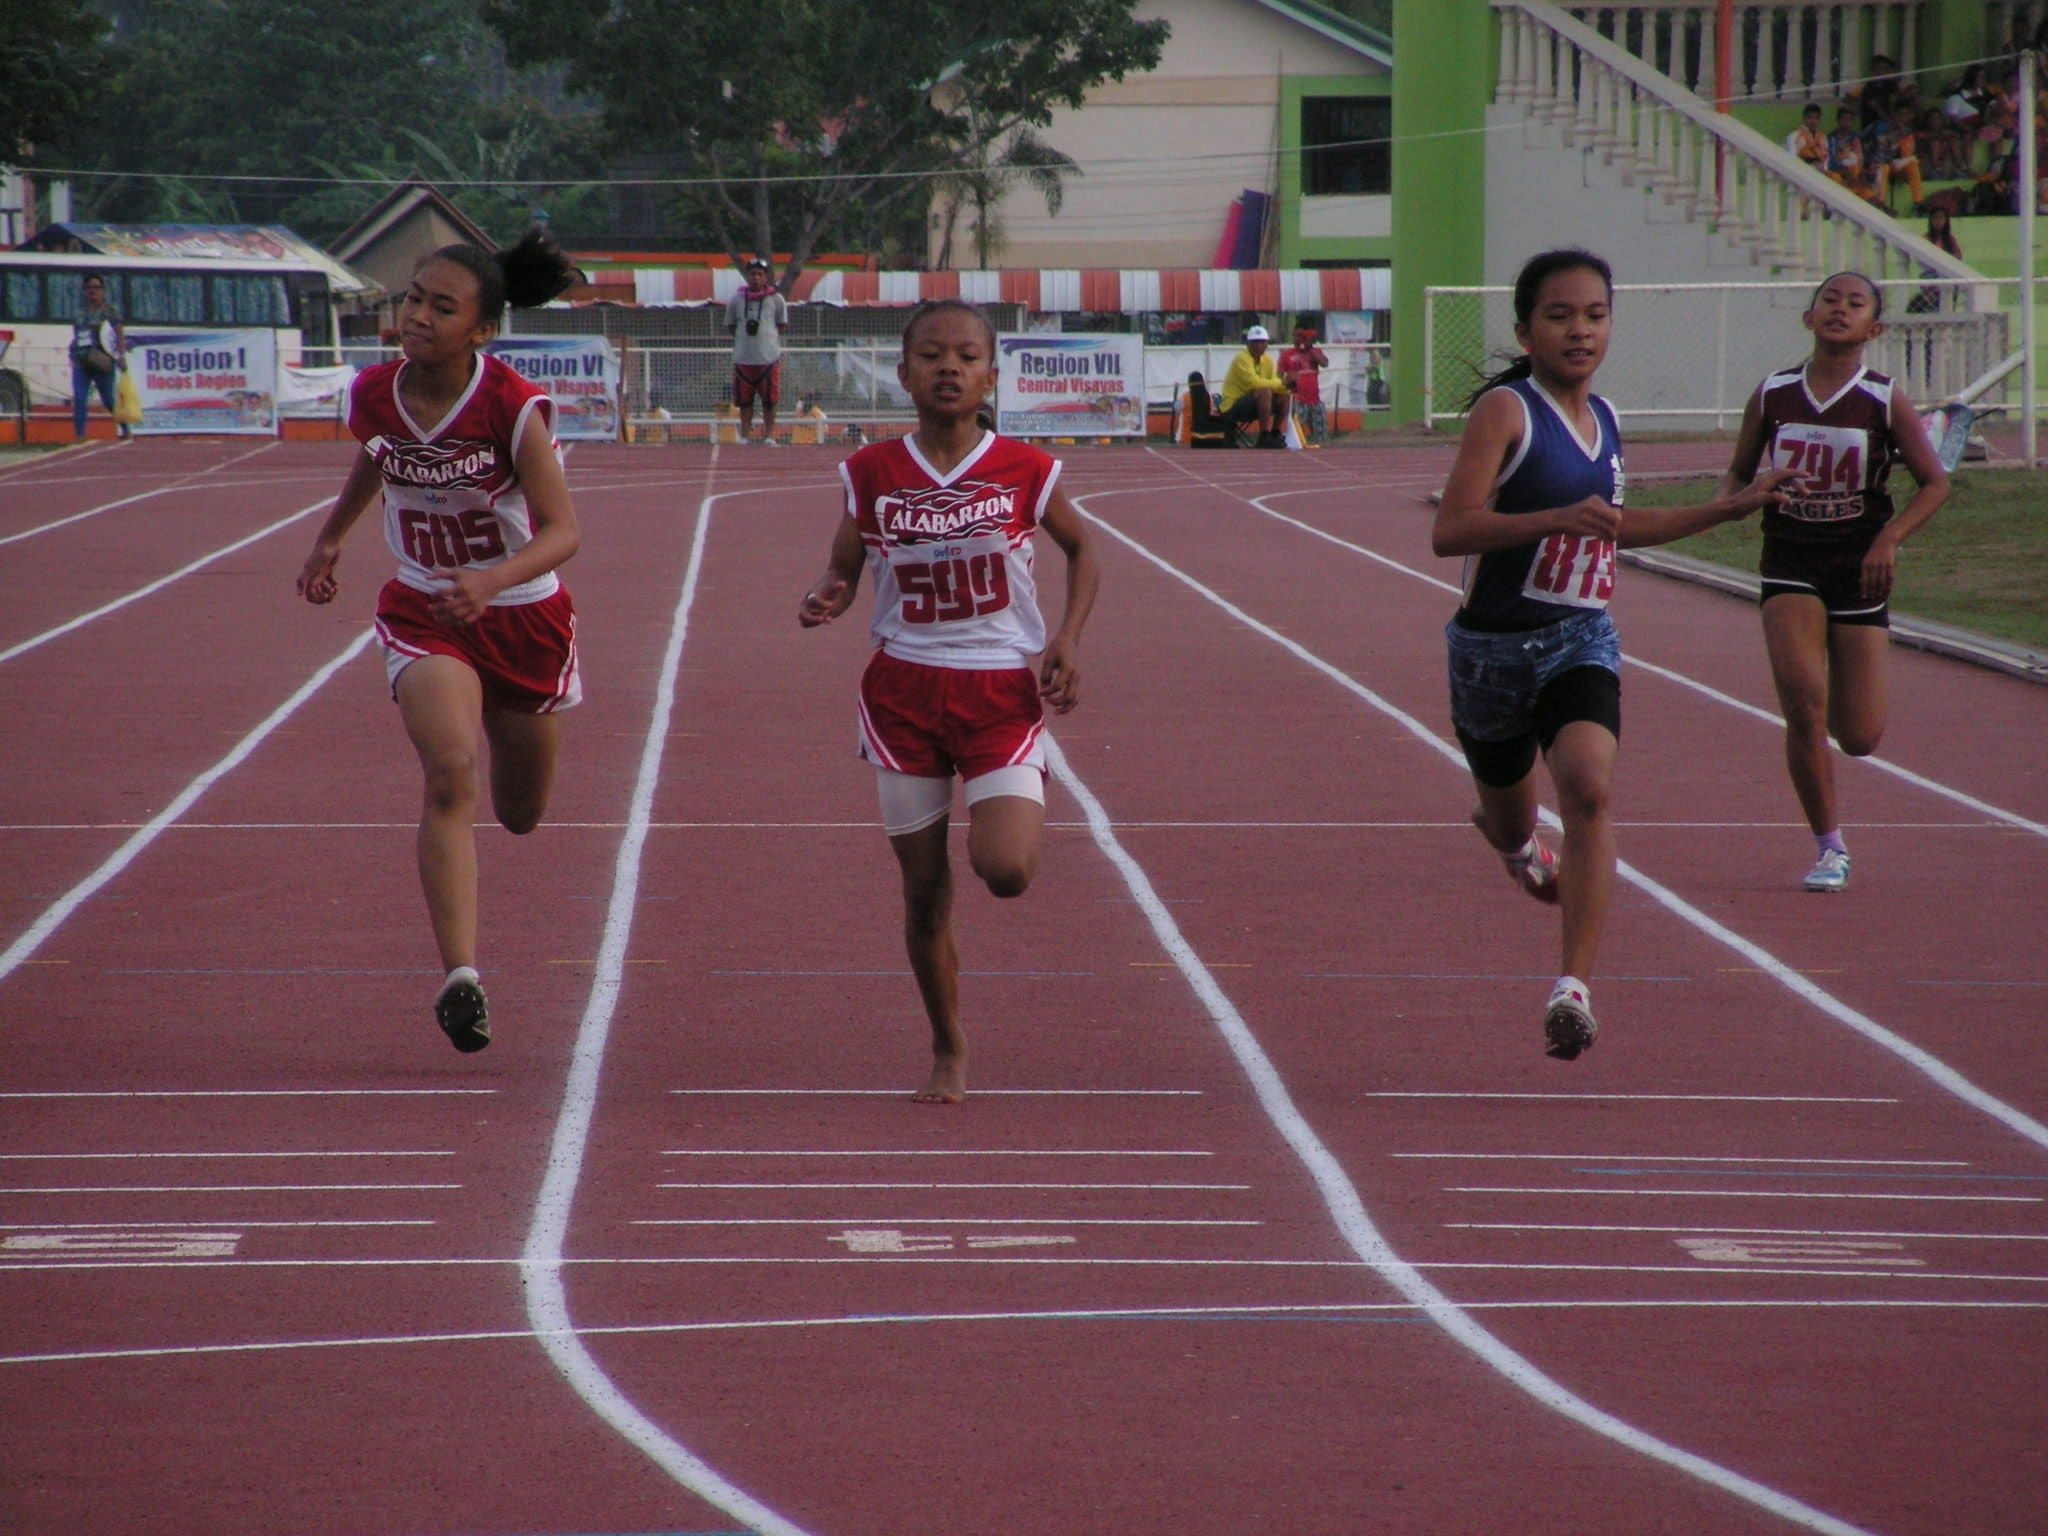 Karyll Clarissa Enrico (599) on her final stretch at the 200m dash